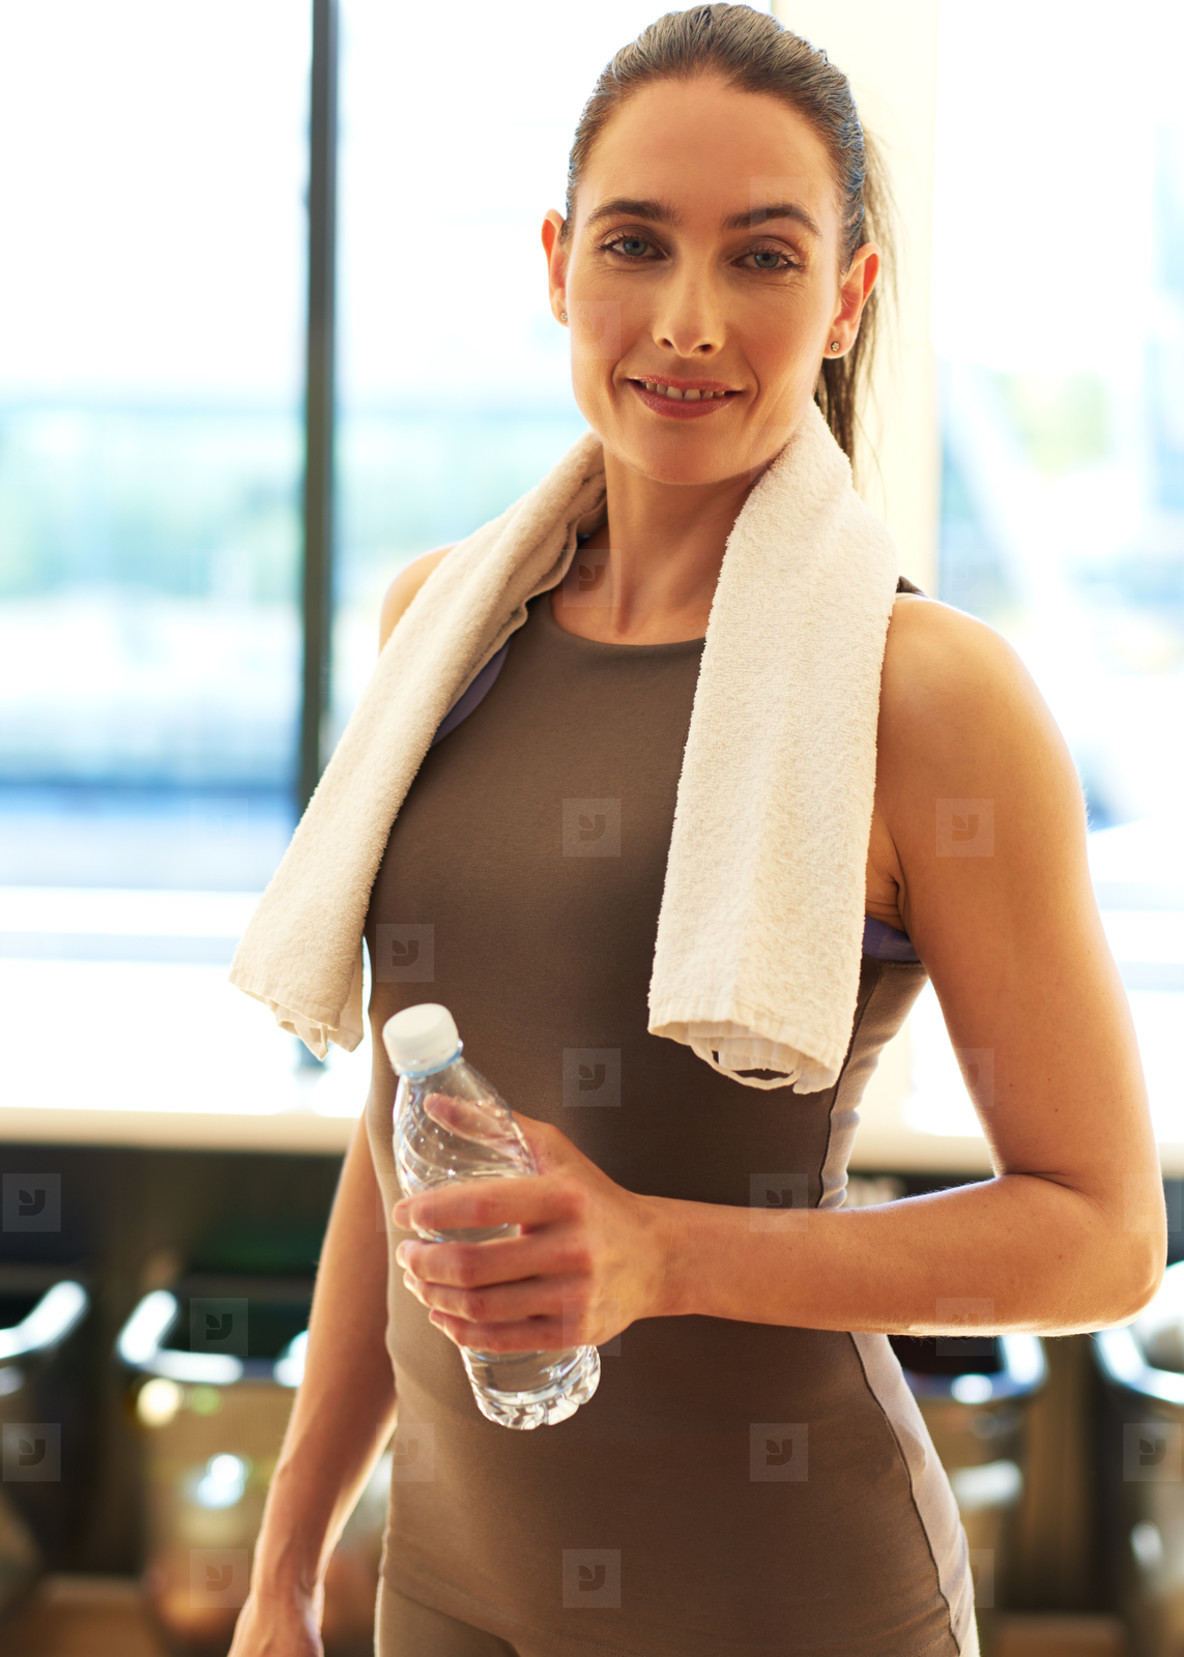 Smiling Fit Young Woman Holding a Bottle of Water